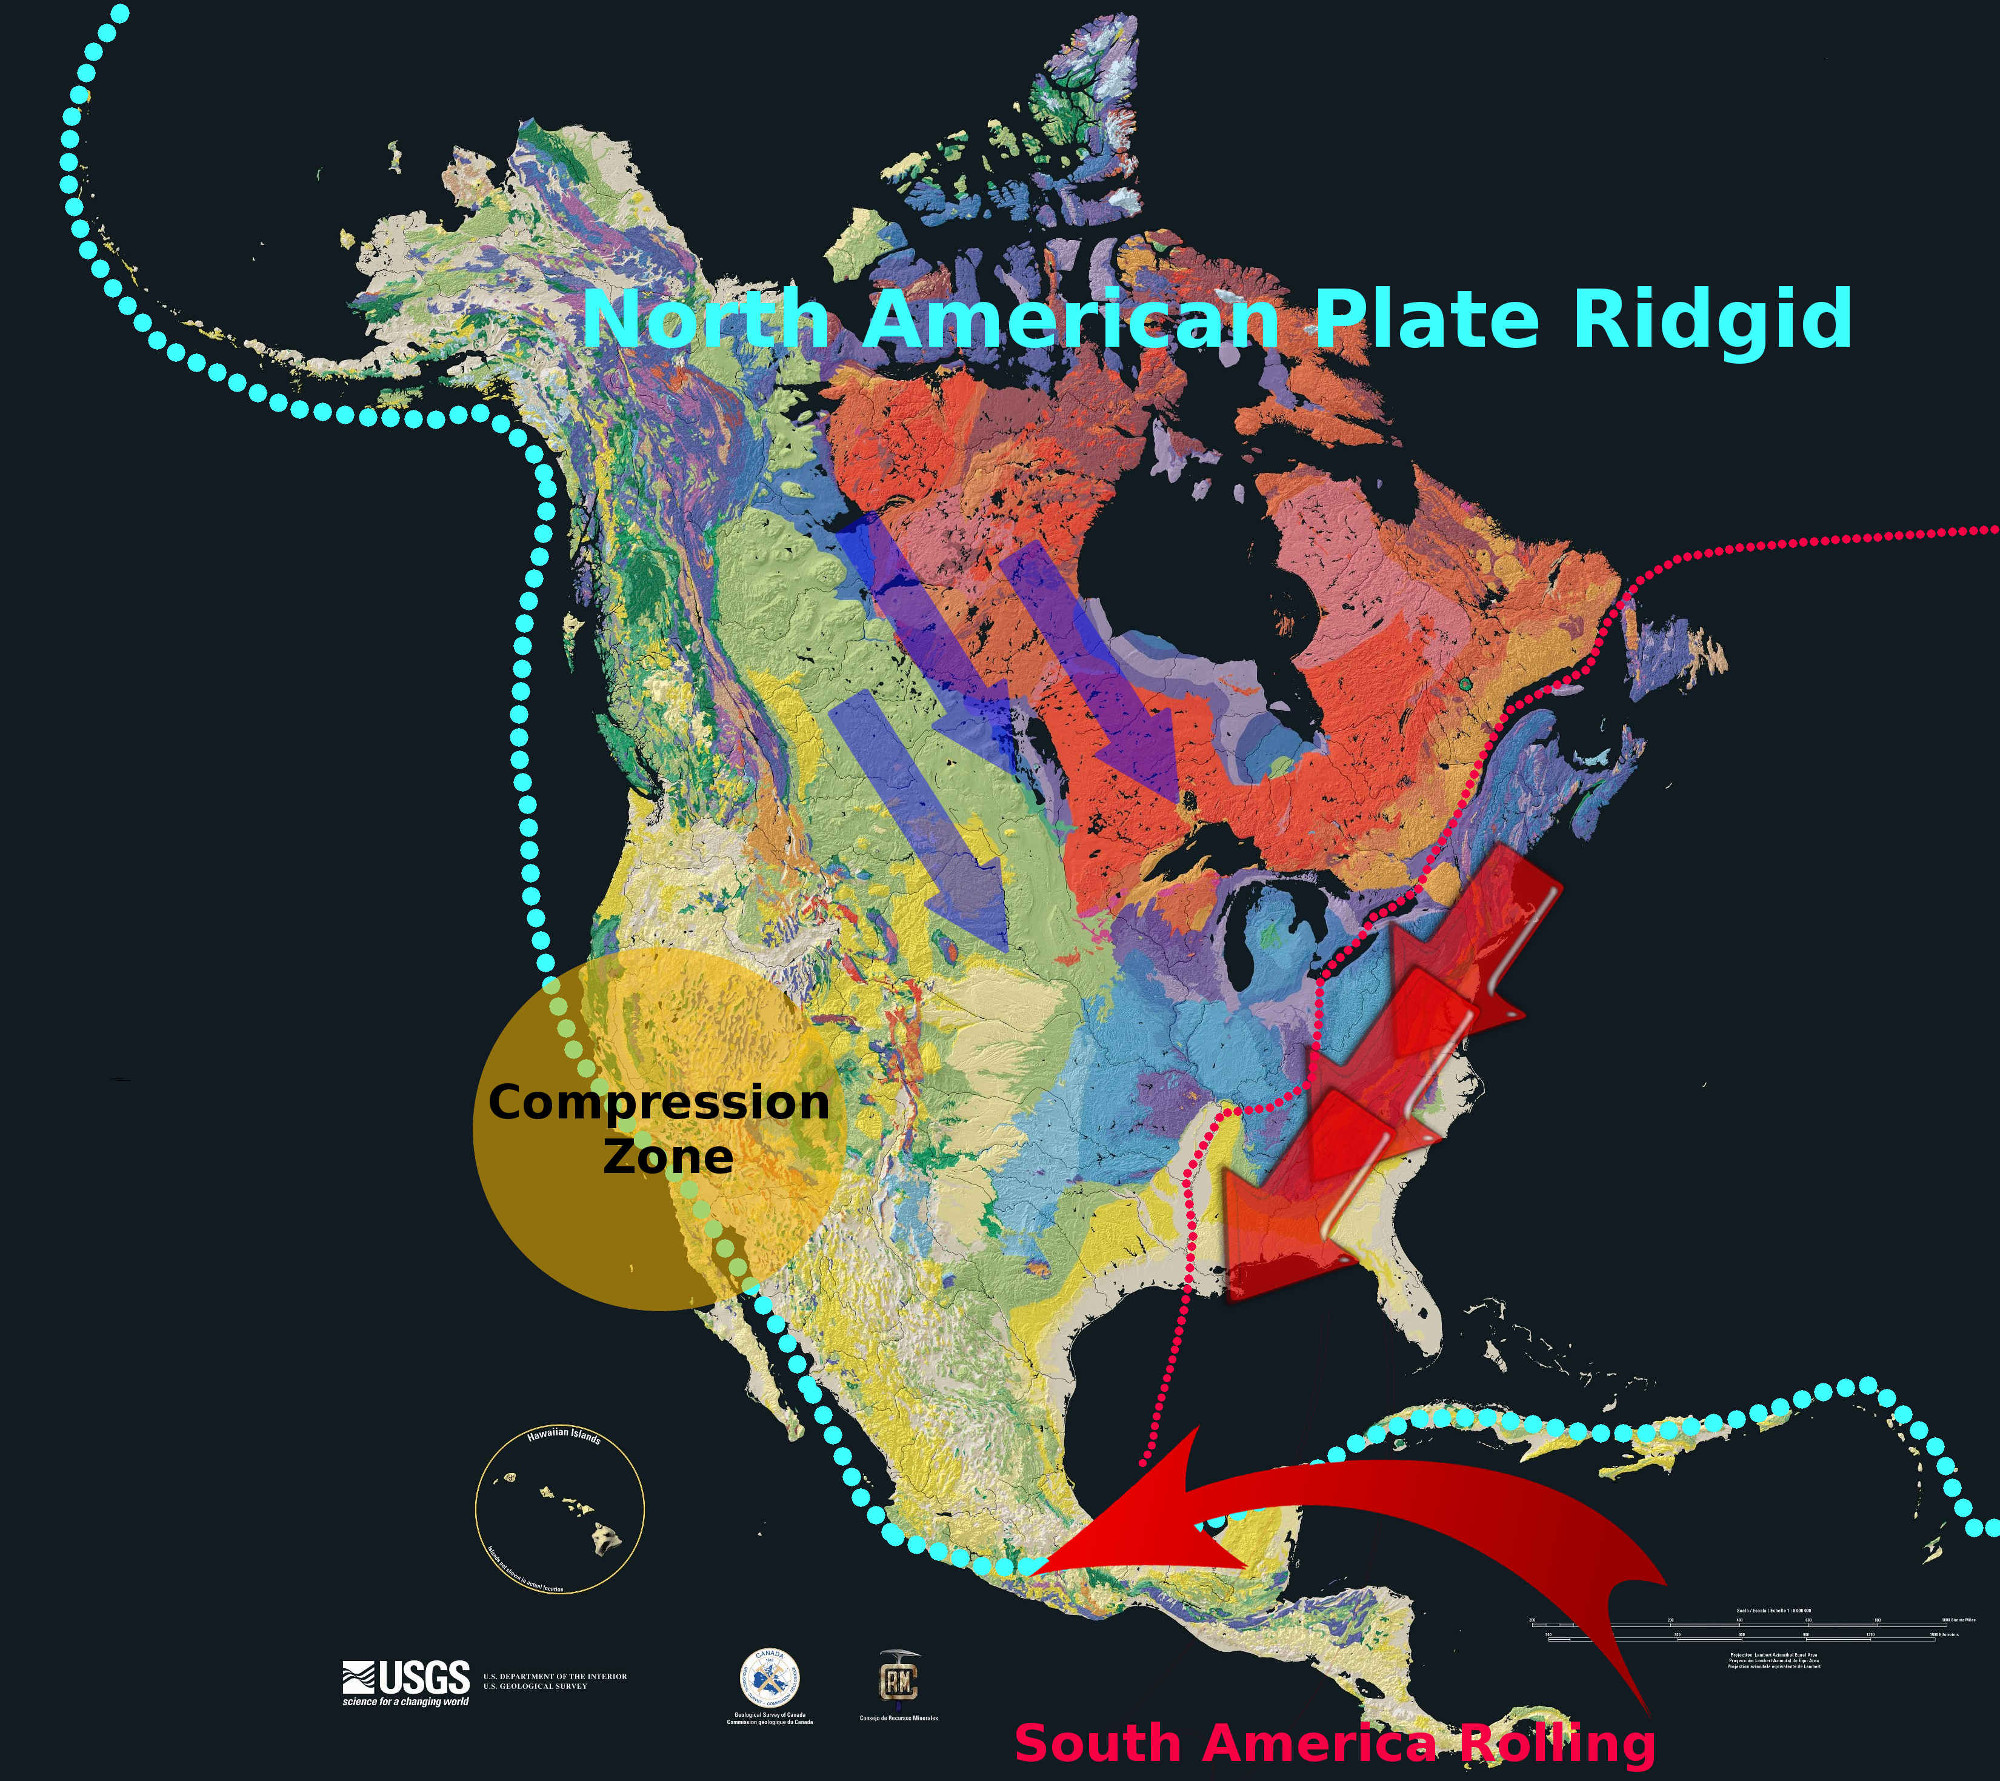 New Video Series: Canadian Pole-Shift Safe Locations – B.C. ... on map after yom kippur war, earth axis shift, map after climate change, map after nibiru, map after planet x, map of earth after polar shift, map after apocalypse, last polar shift, map after great flood, 15 months in the poles shift, ice polar shift, map after ww1, nasa earth shift, map after 1948 war, world map with polar shift, nasa claims polar shift, map of north america after american revolution, map of america after 2012, map after world war i, polar vortex shift,